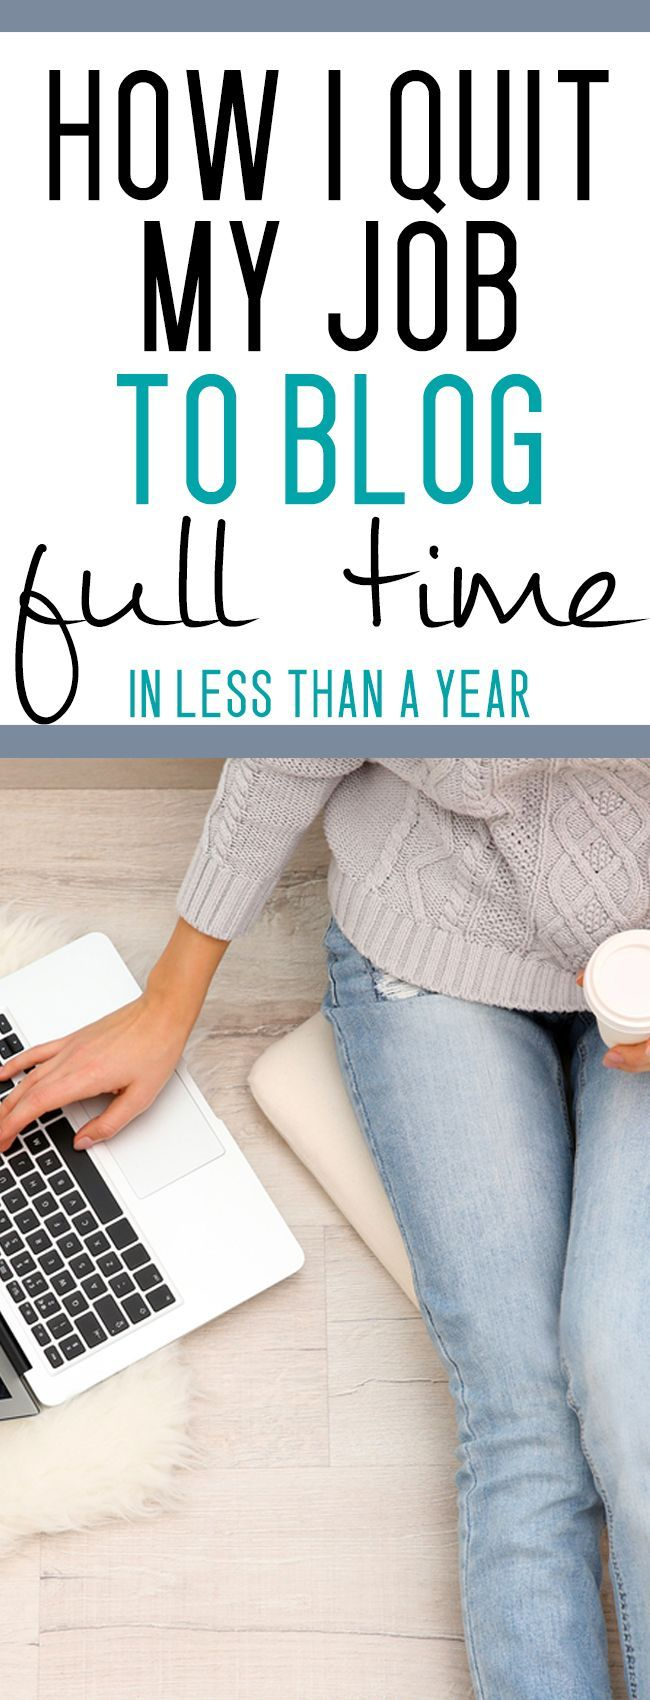 HOW TO QUIT YOUR JOB AND WORK FROM HOME AS A BLOGGER - this is amazing! this woman makes over 5000$ / month from home with no experience!